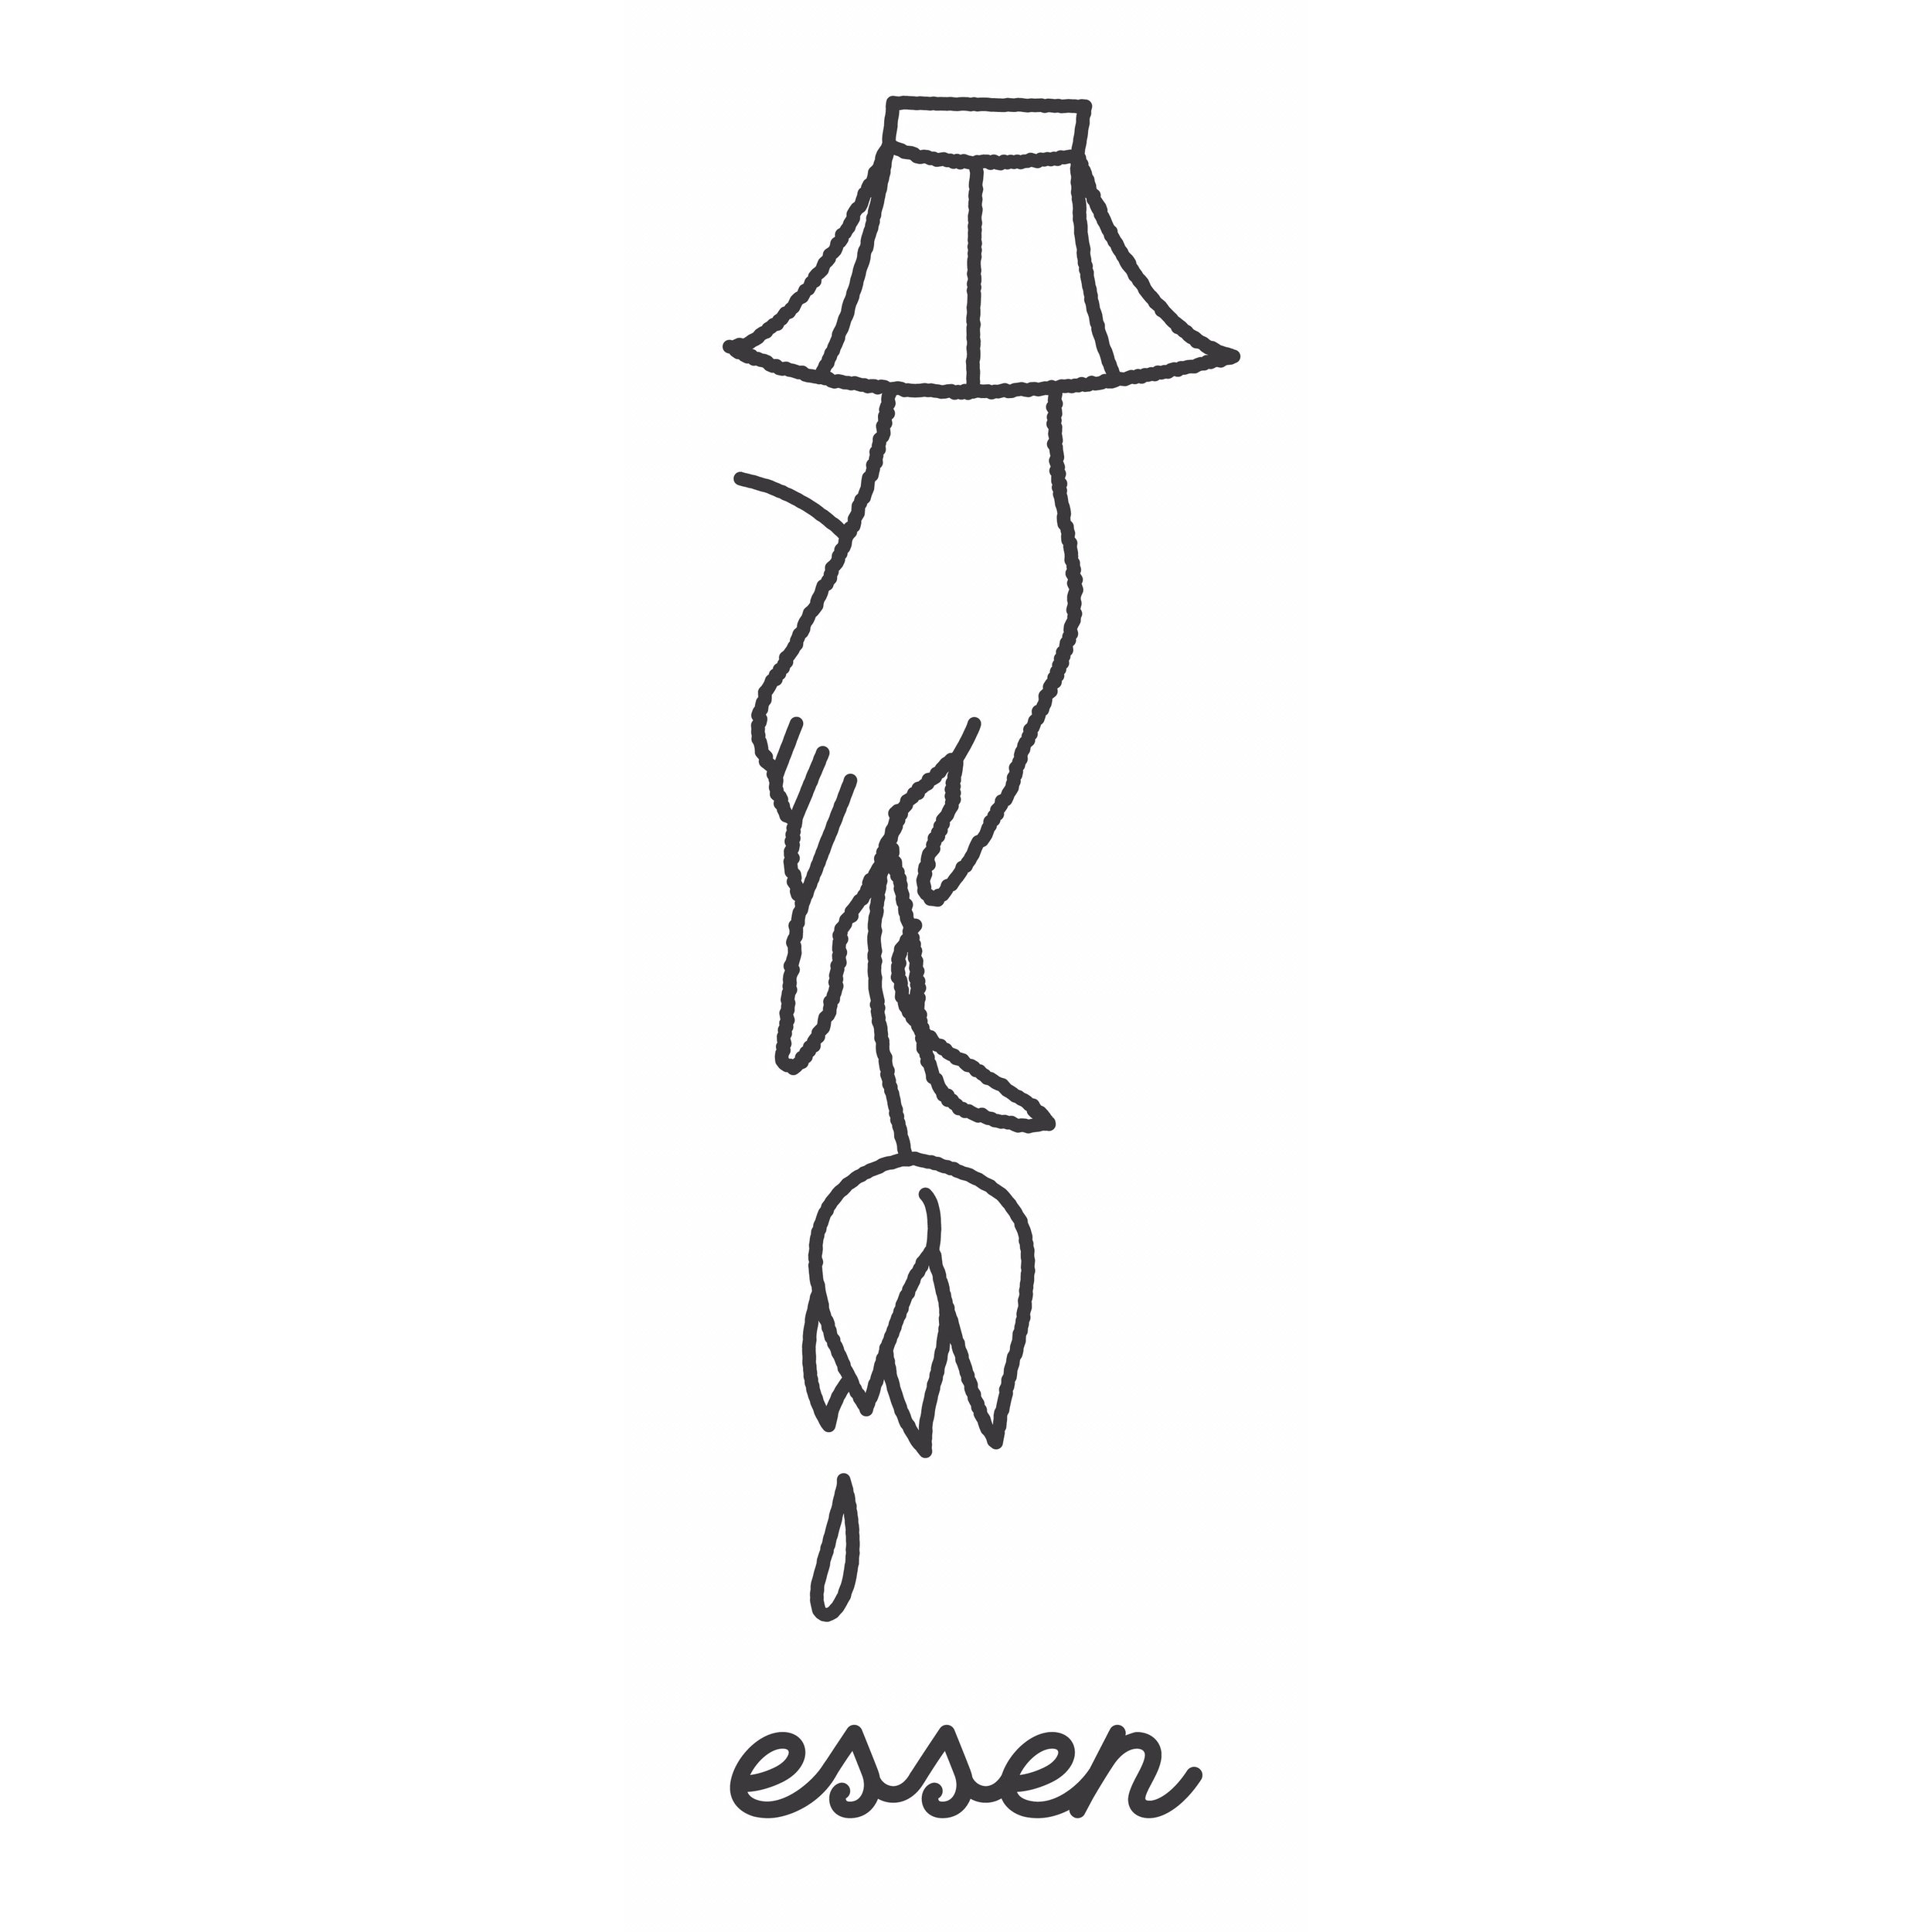 The essen logo featuring a hand and flower representing the juxtaposition of vulnerability and strength, brand art by  Nick Goodwin